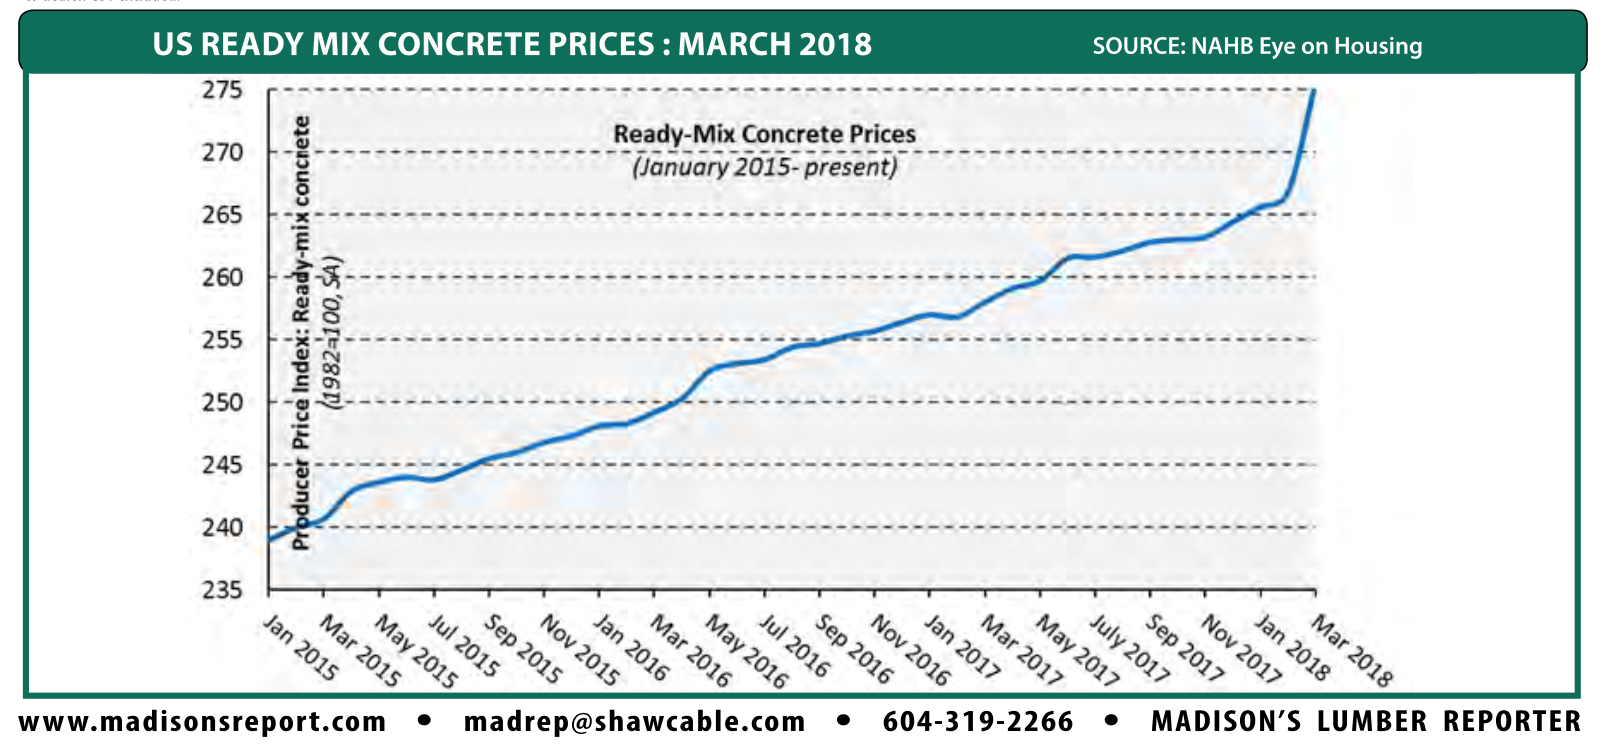 US Construction Materials Prices: March 2018